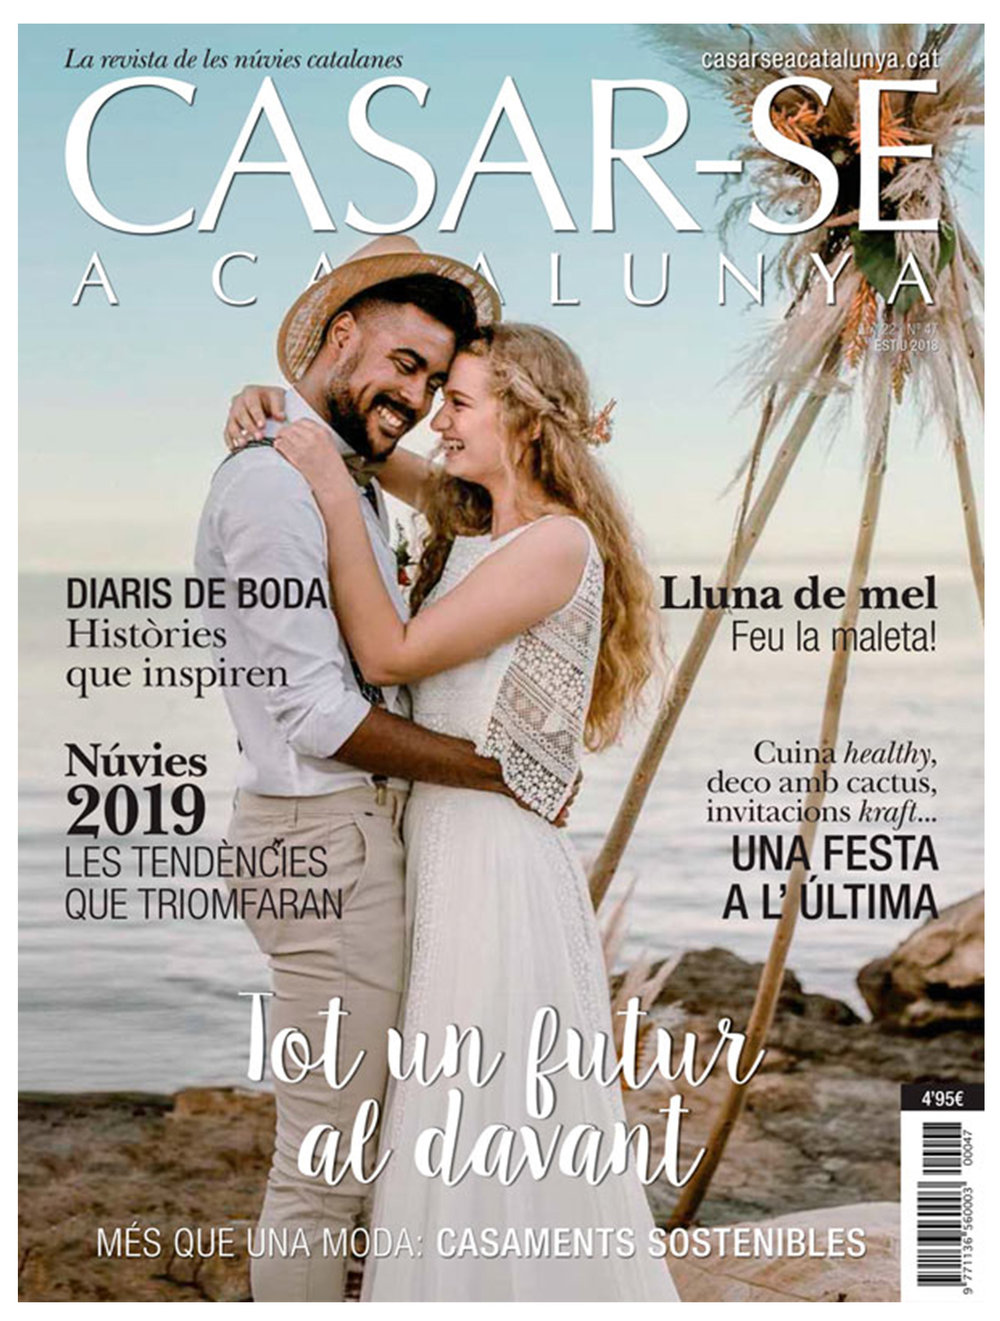 As featured in the summer issue of Casar-se a Catalunya -